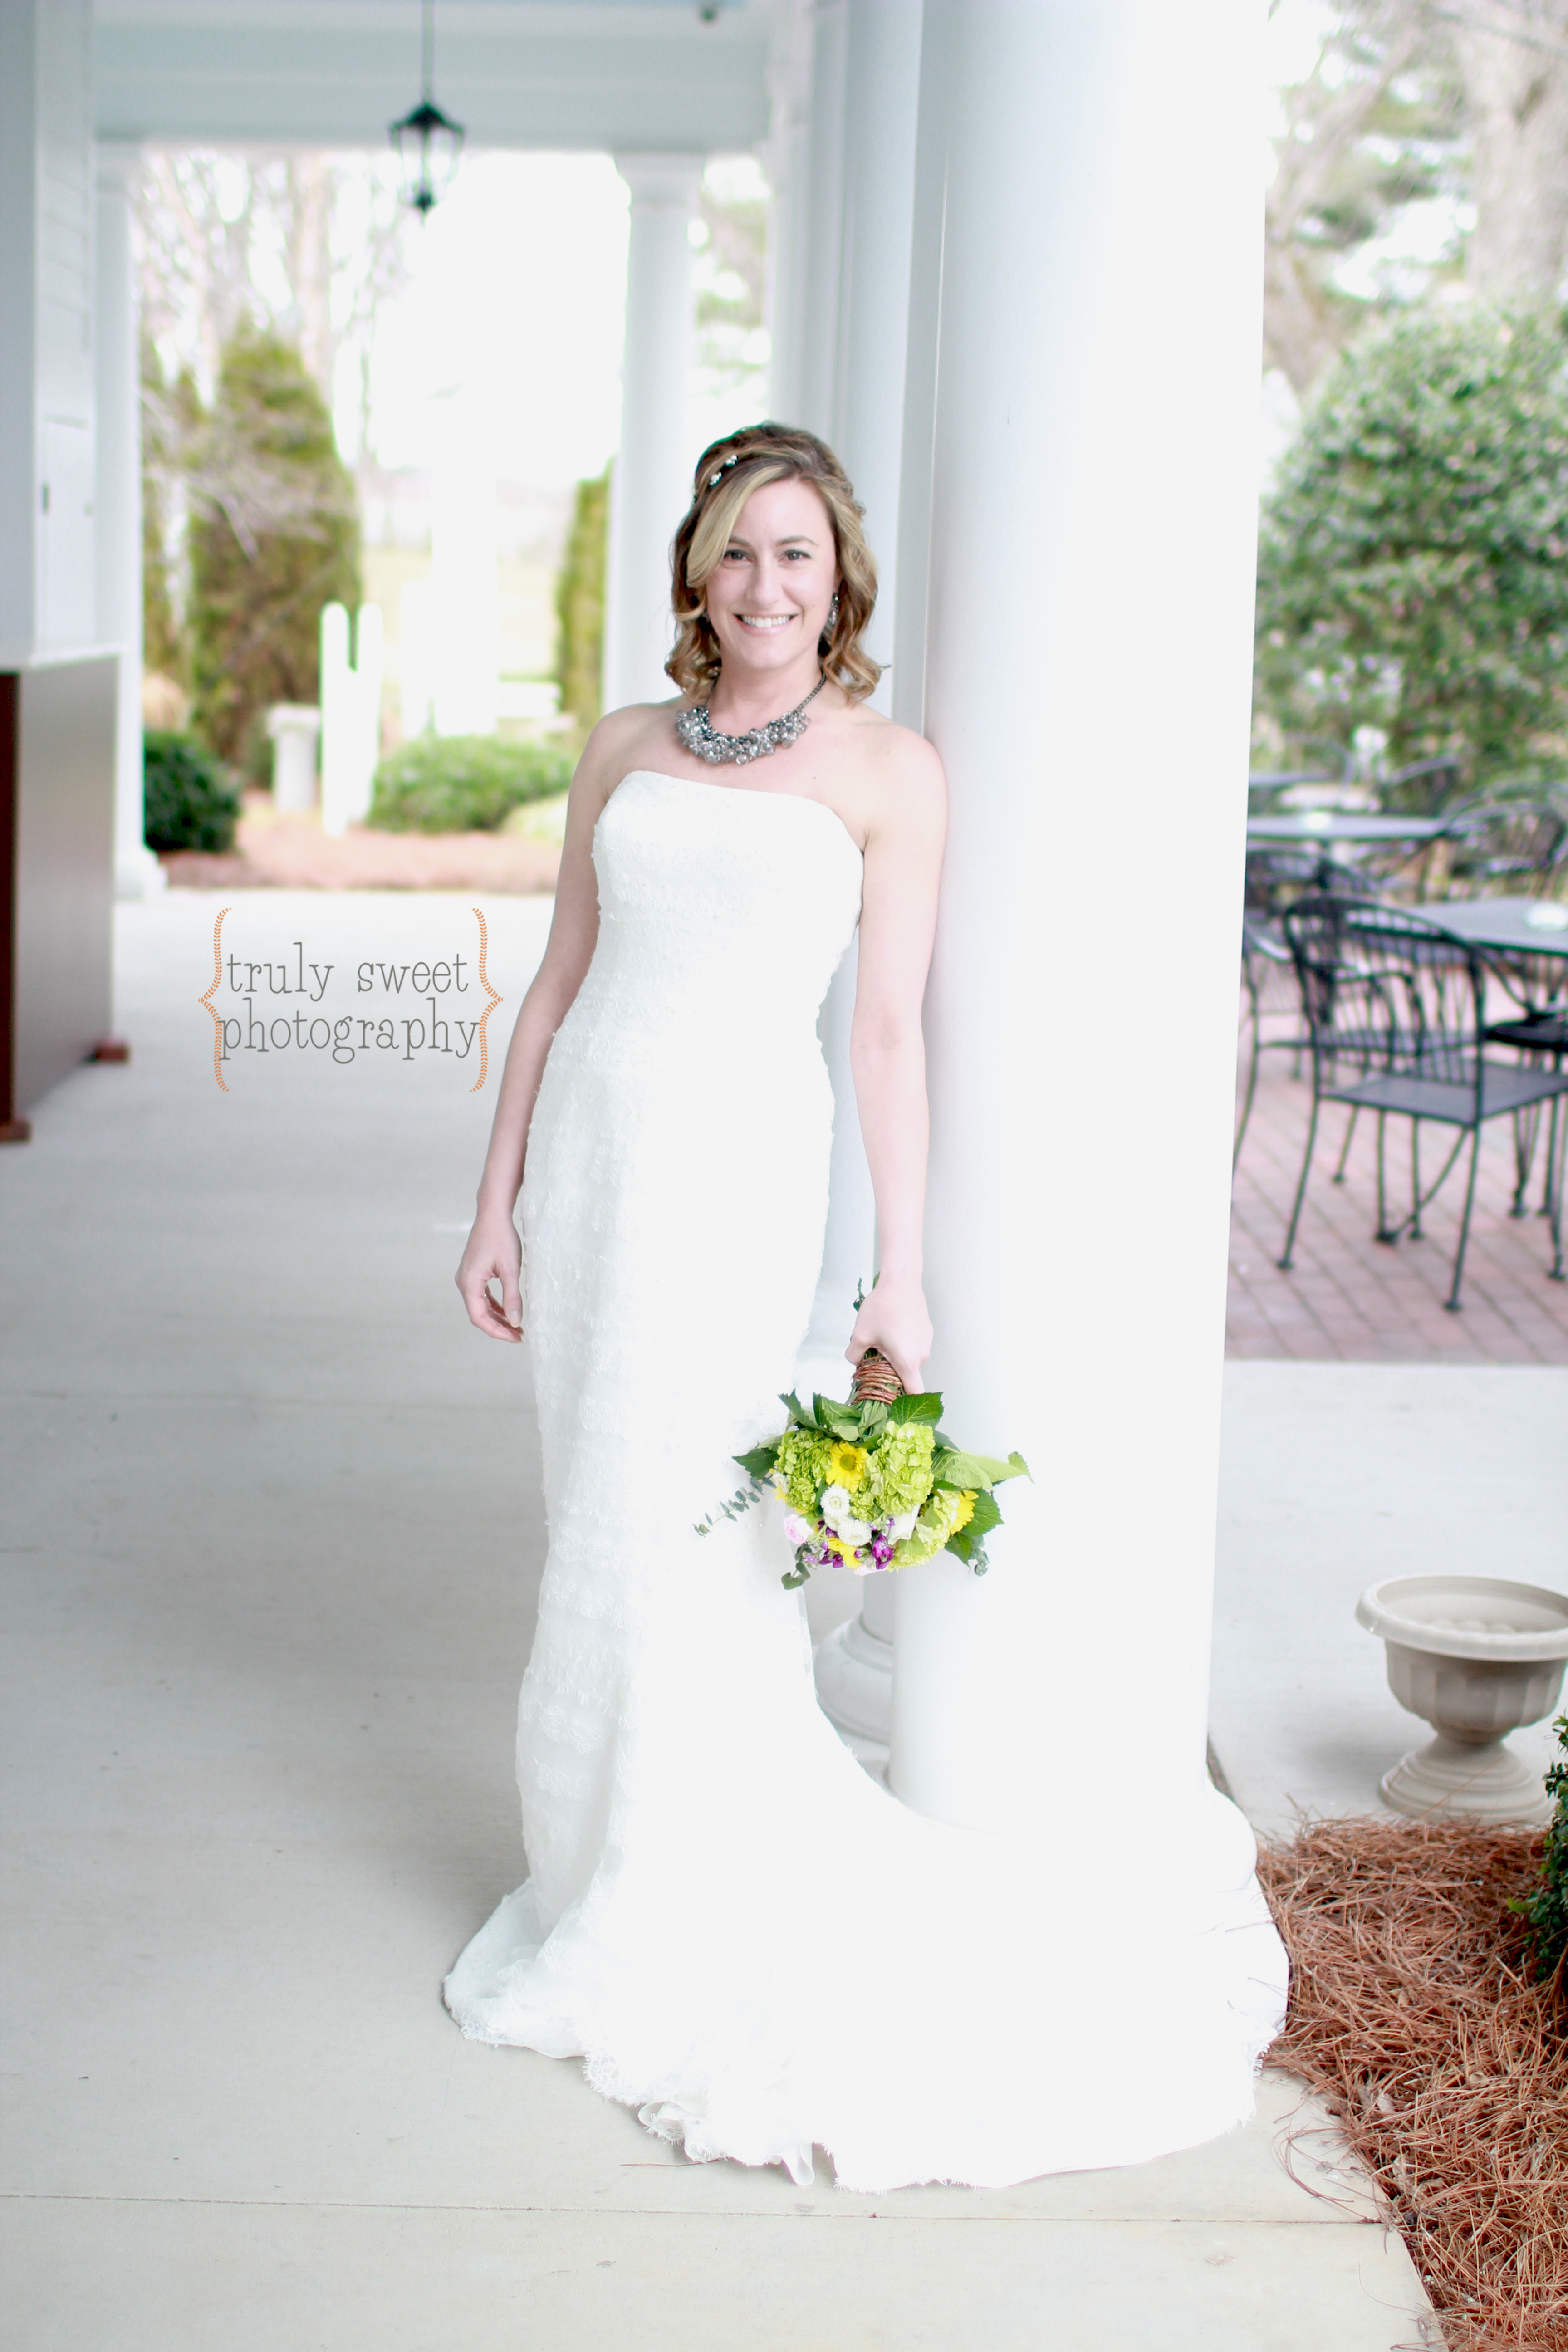 Braselton Stover House Bridal Wedding Photo of Bride